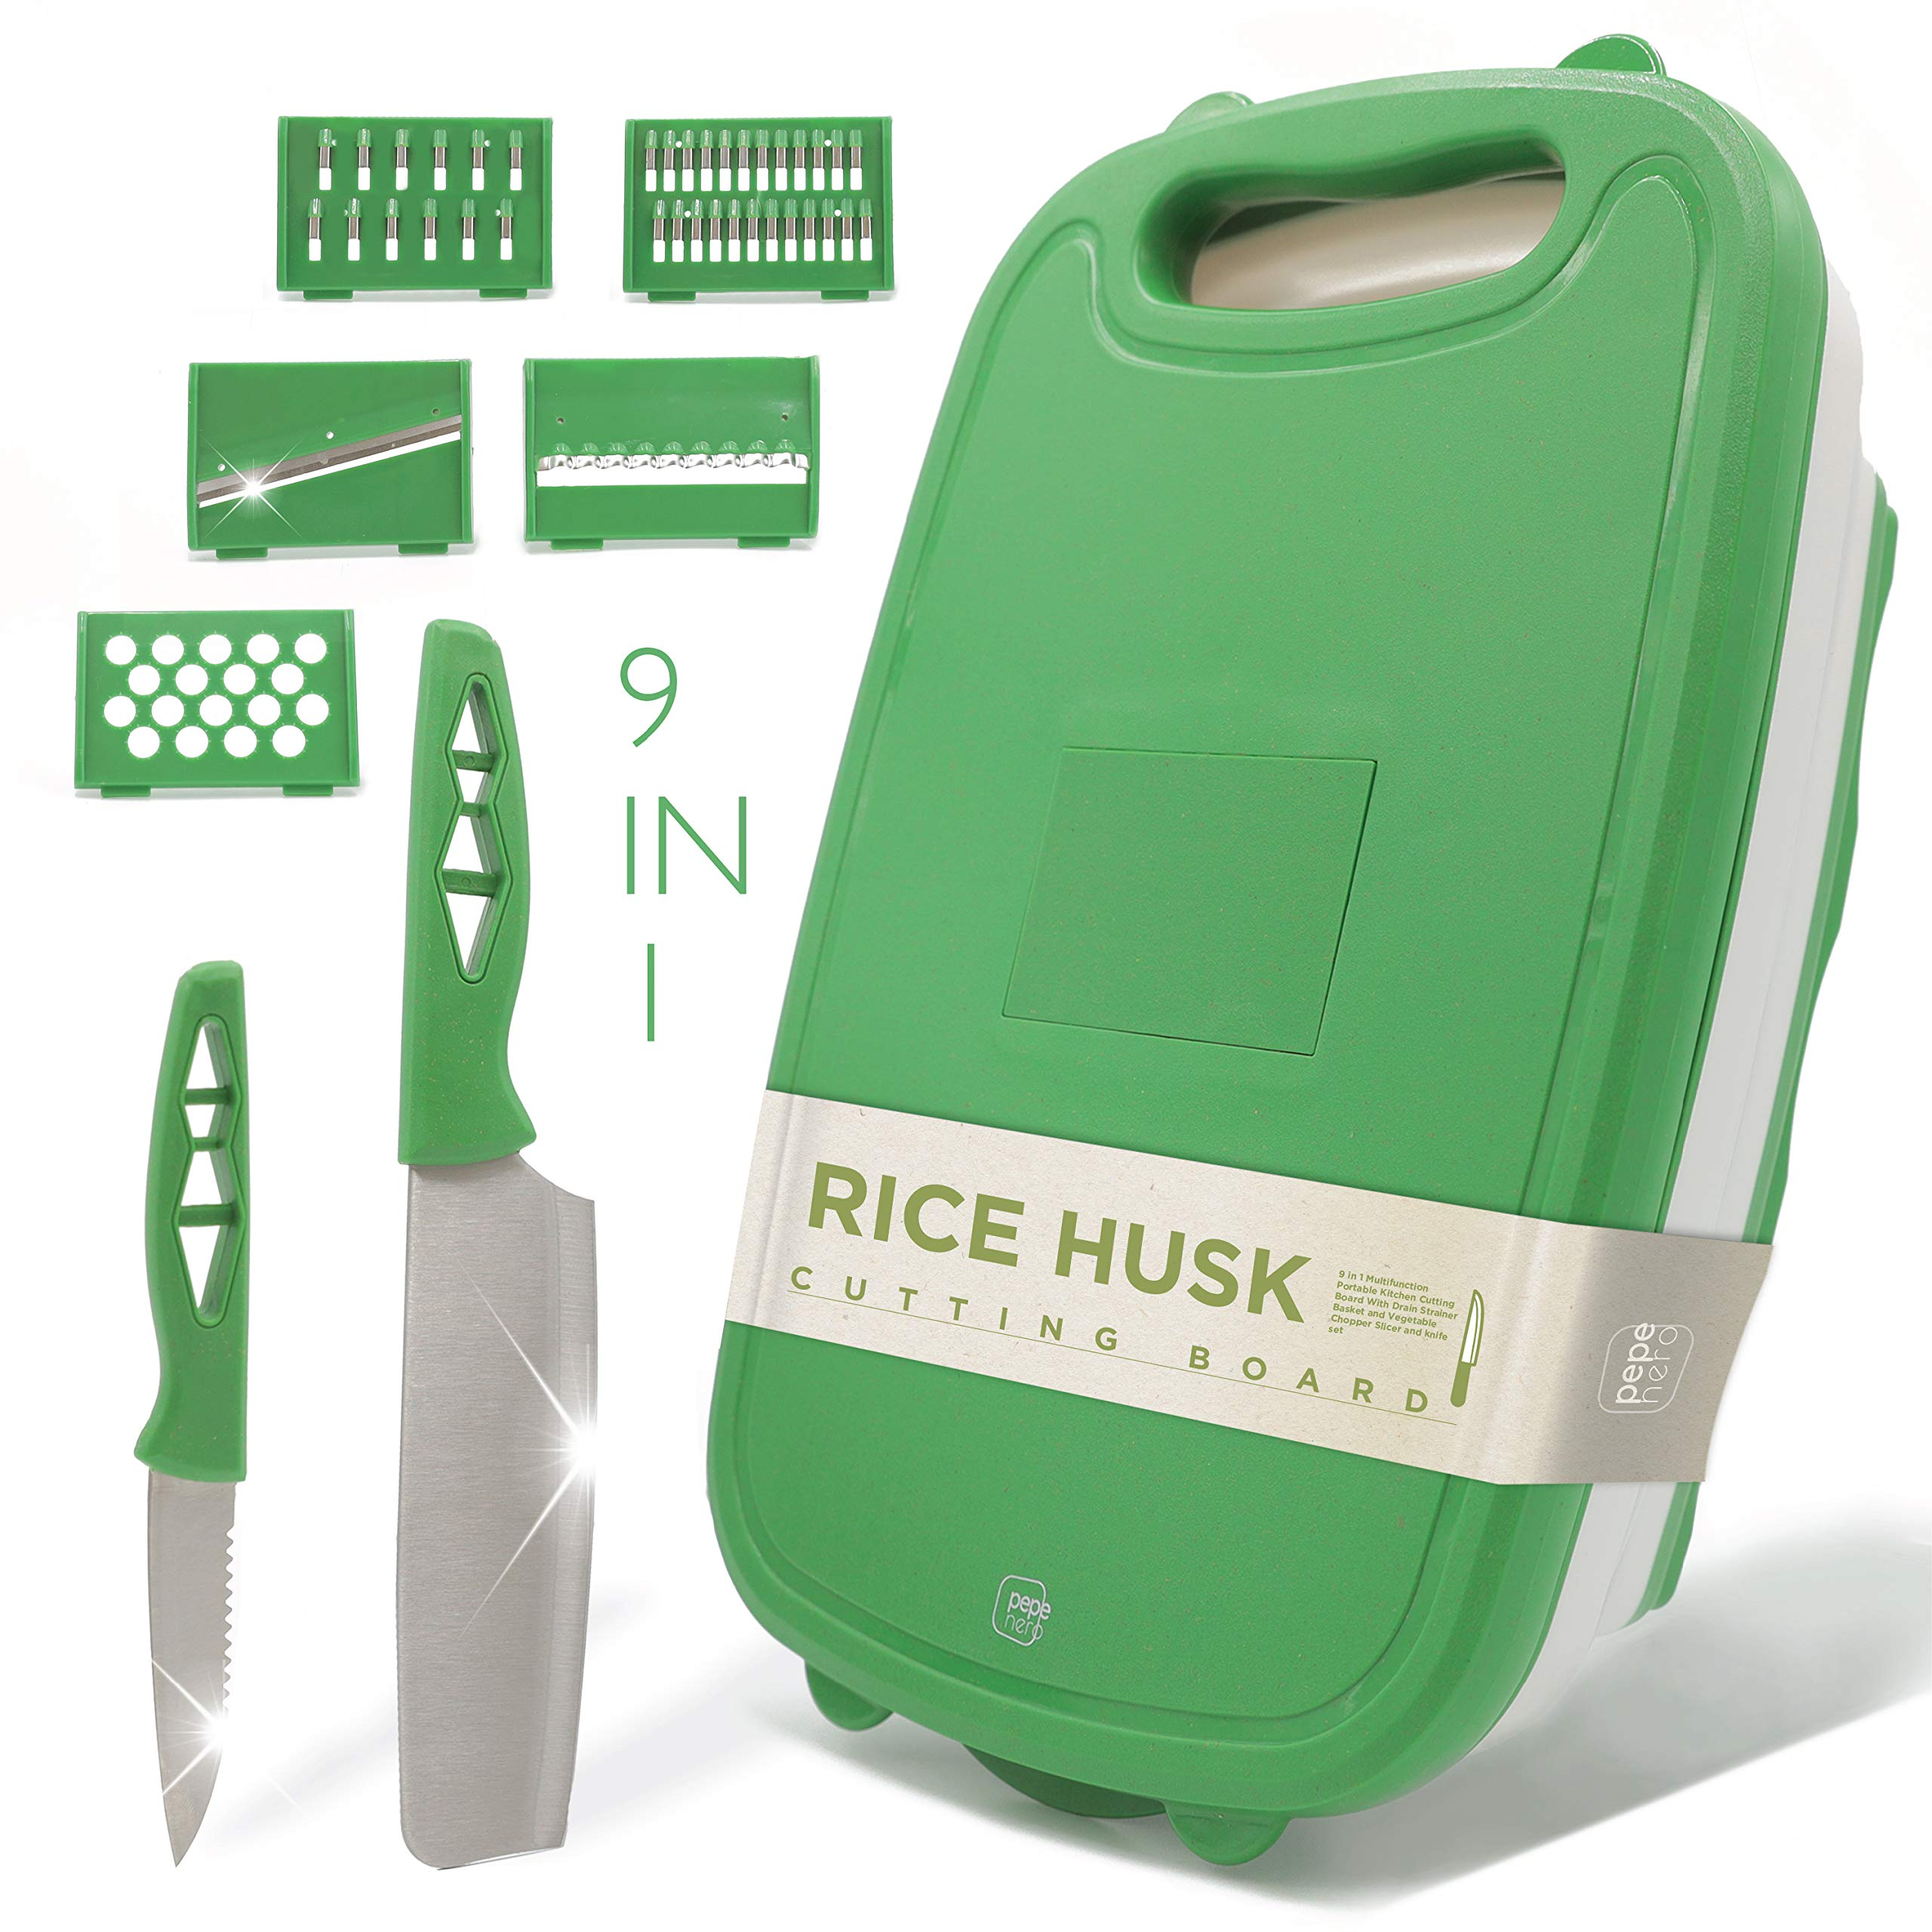 Cutting Board For Kitchen - 9-In-1 Multifunctional Cutting Boards - Rice Husk Material - Collapsible Chopping Board + 2 Knifes + Fruit & Vegetable Slicer Kit + Strainer - Kitchen Set - Dishwasher Safe by Pepe Nero